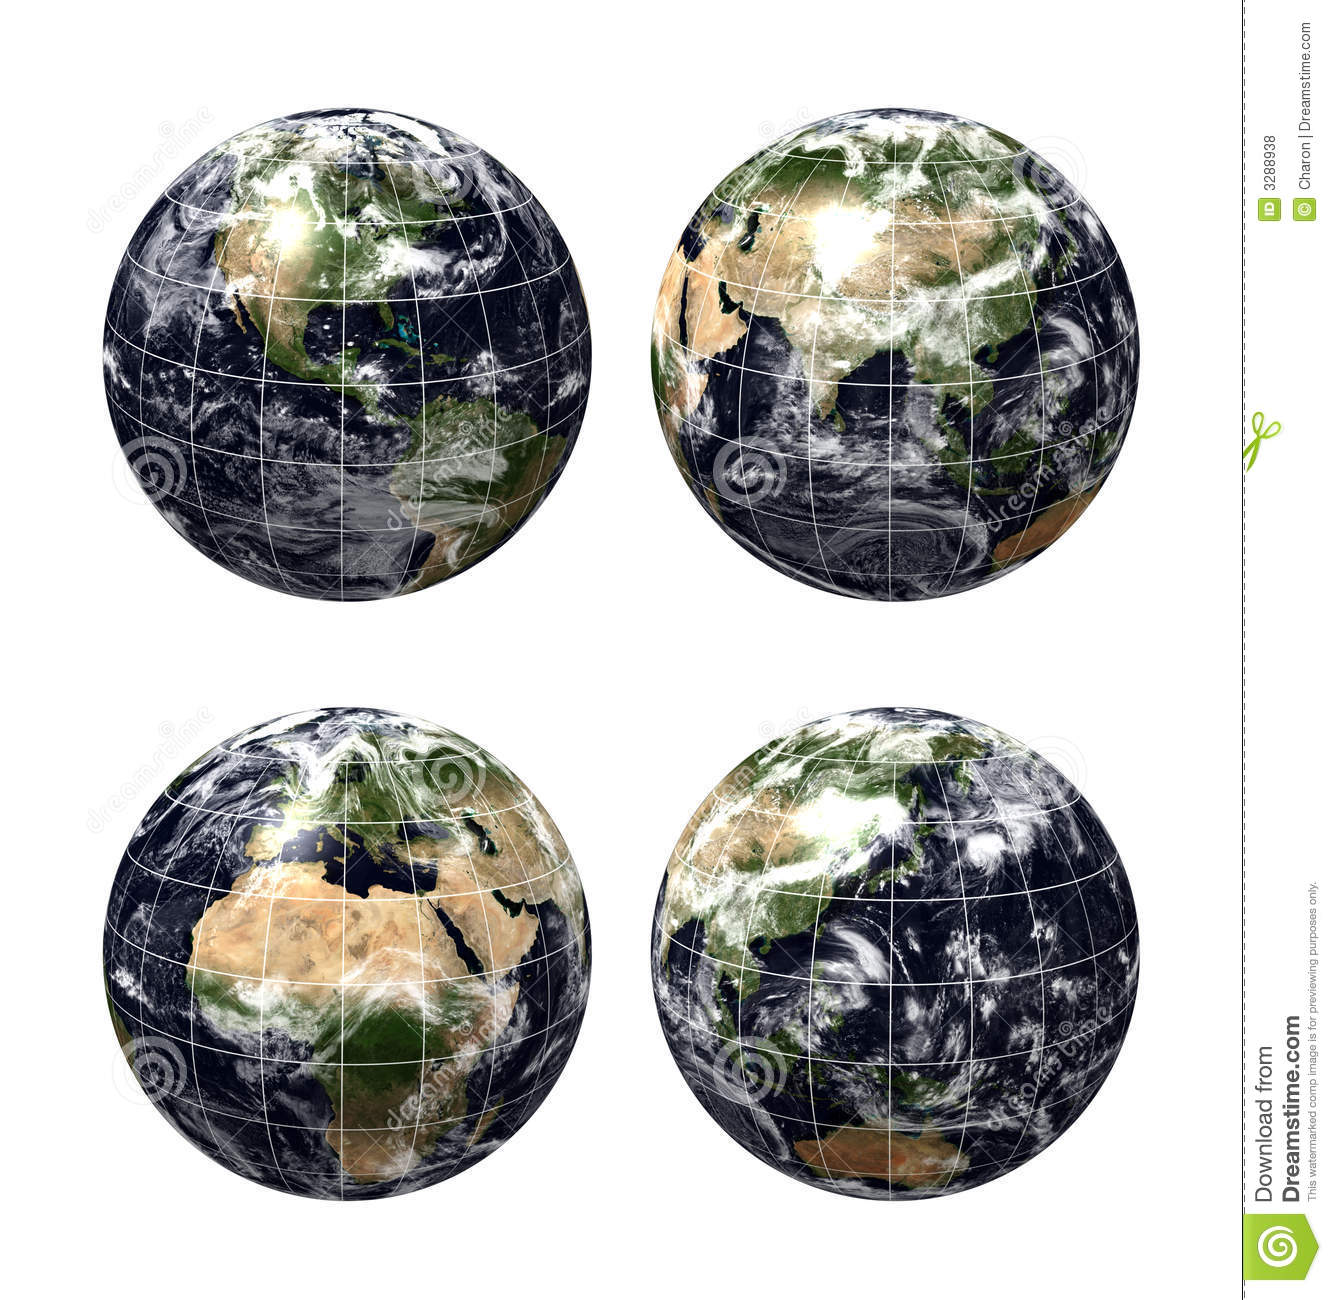 Globe earth 3d planet realistic map stock illustration globe earth 3d planet realistic map gumiabroncs Image collections